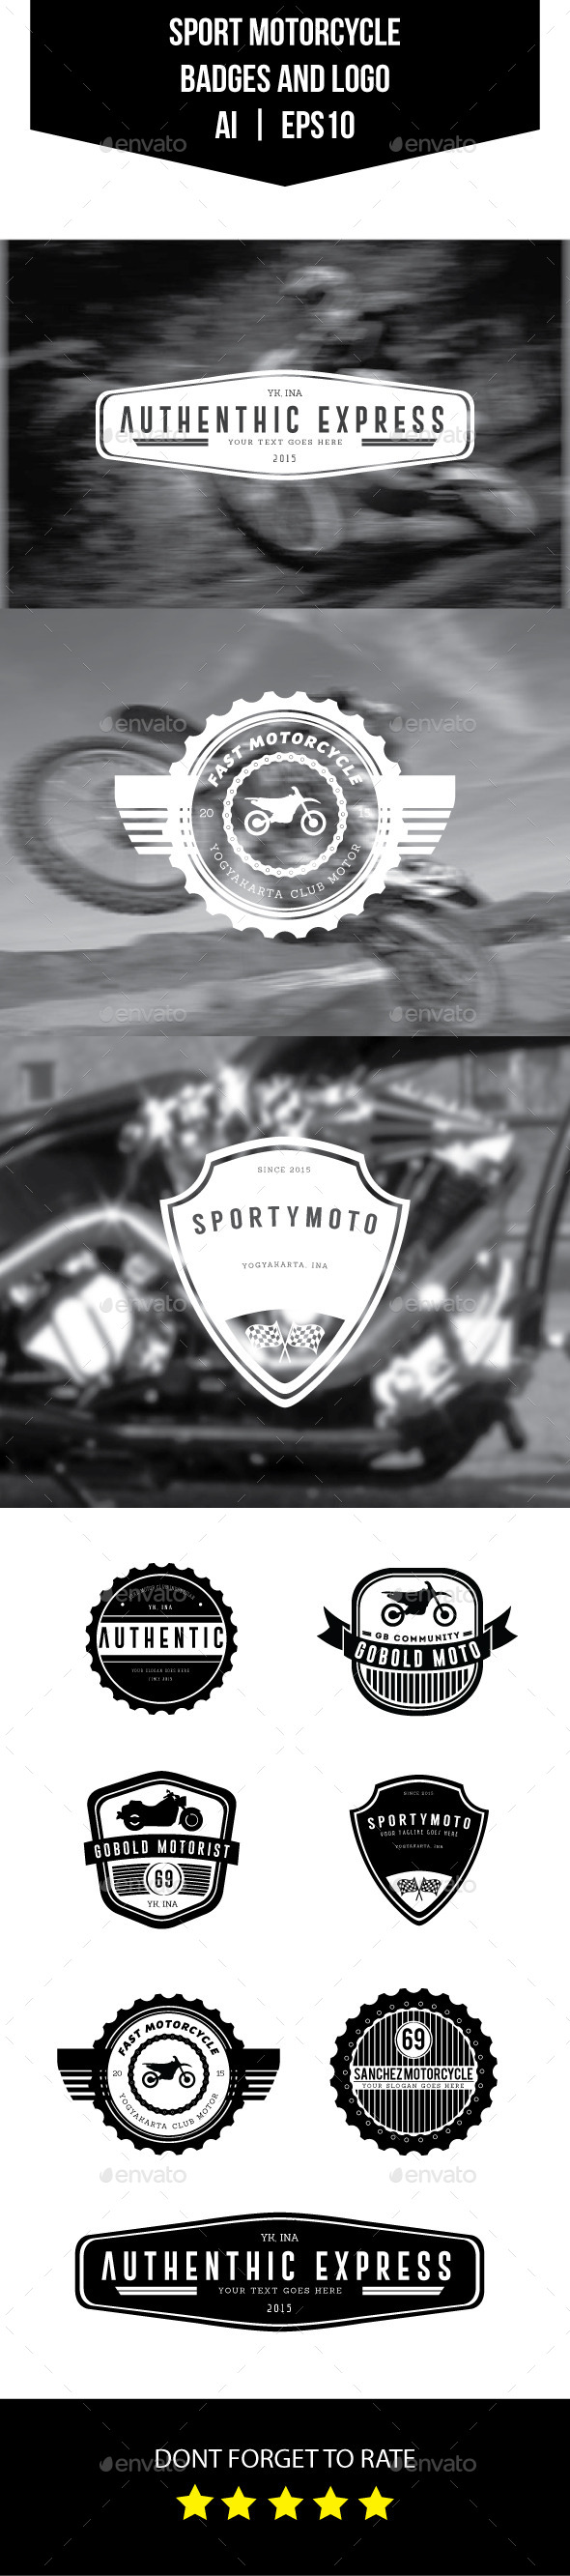 GraphicRiver Sport Motorcycle Badges and Logo 11399989